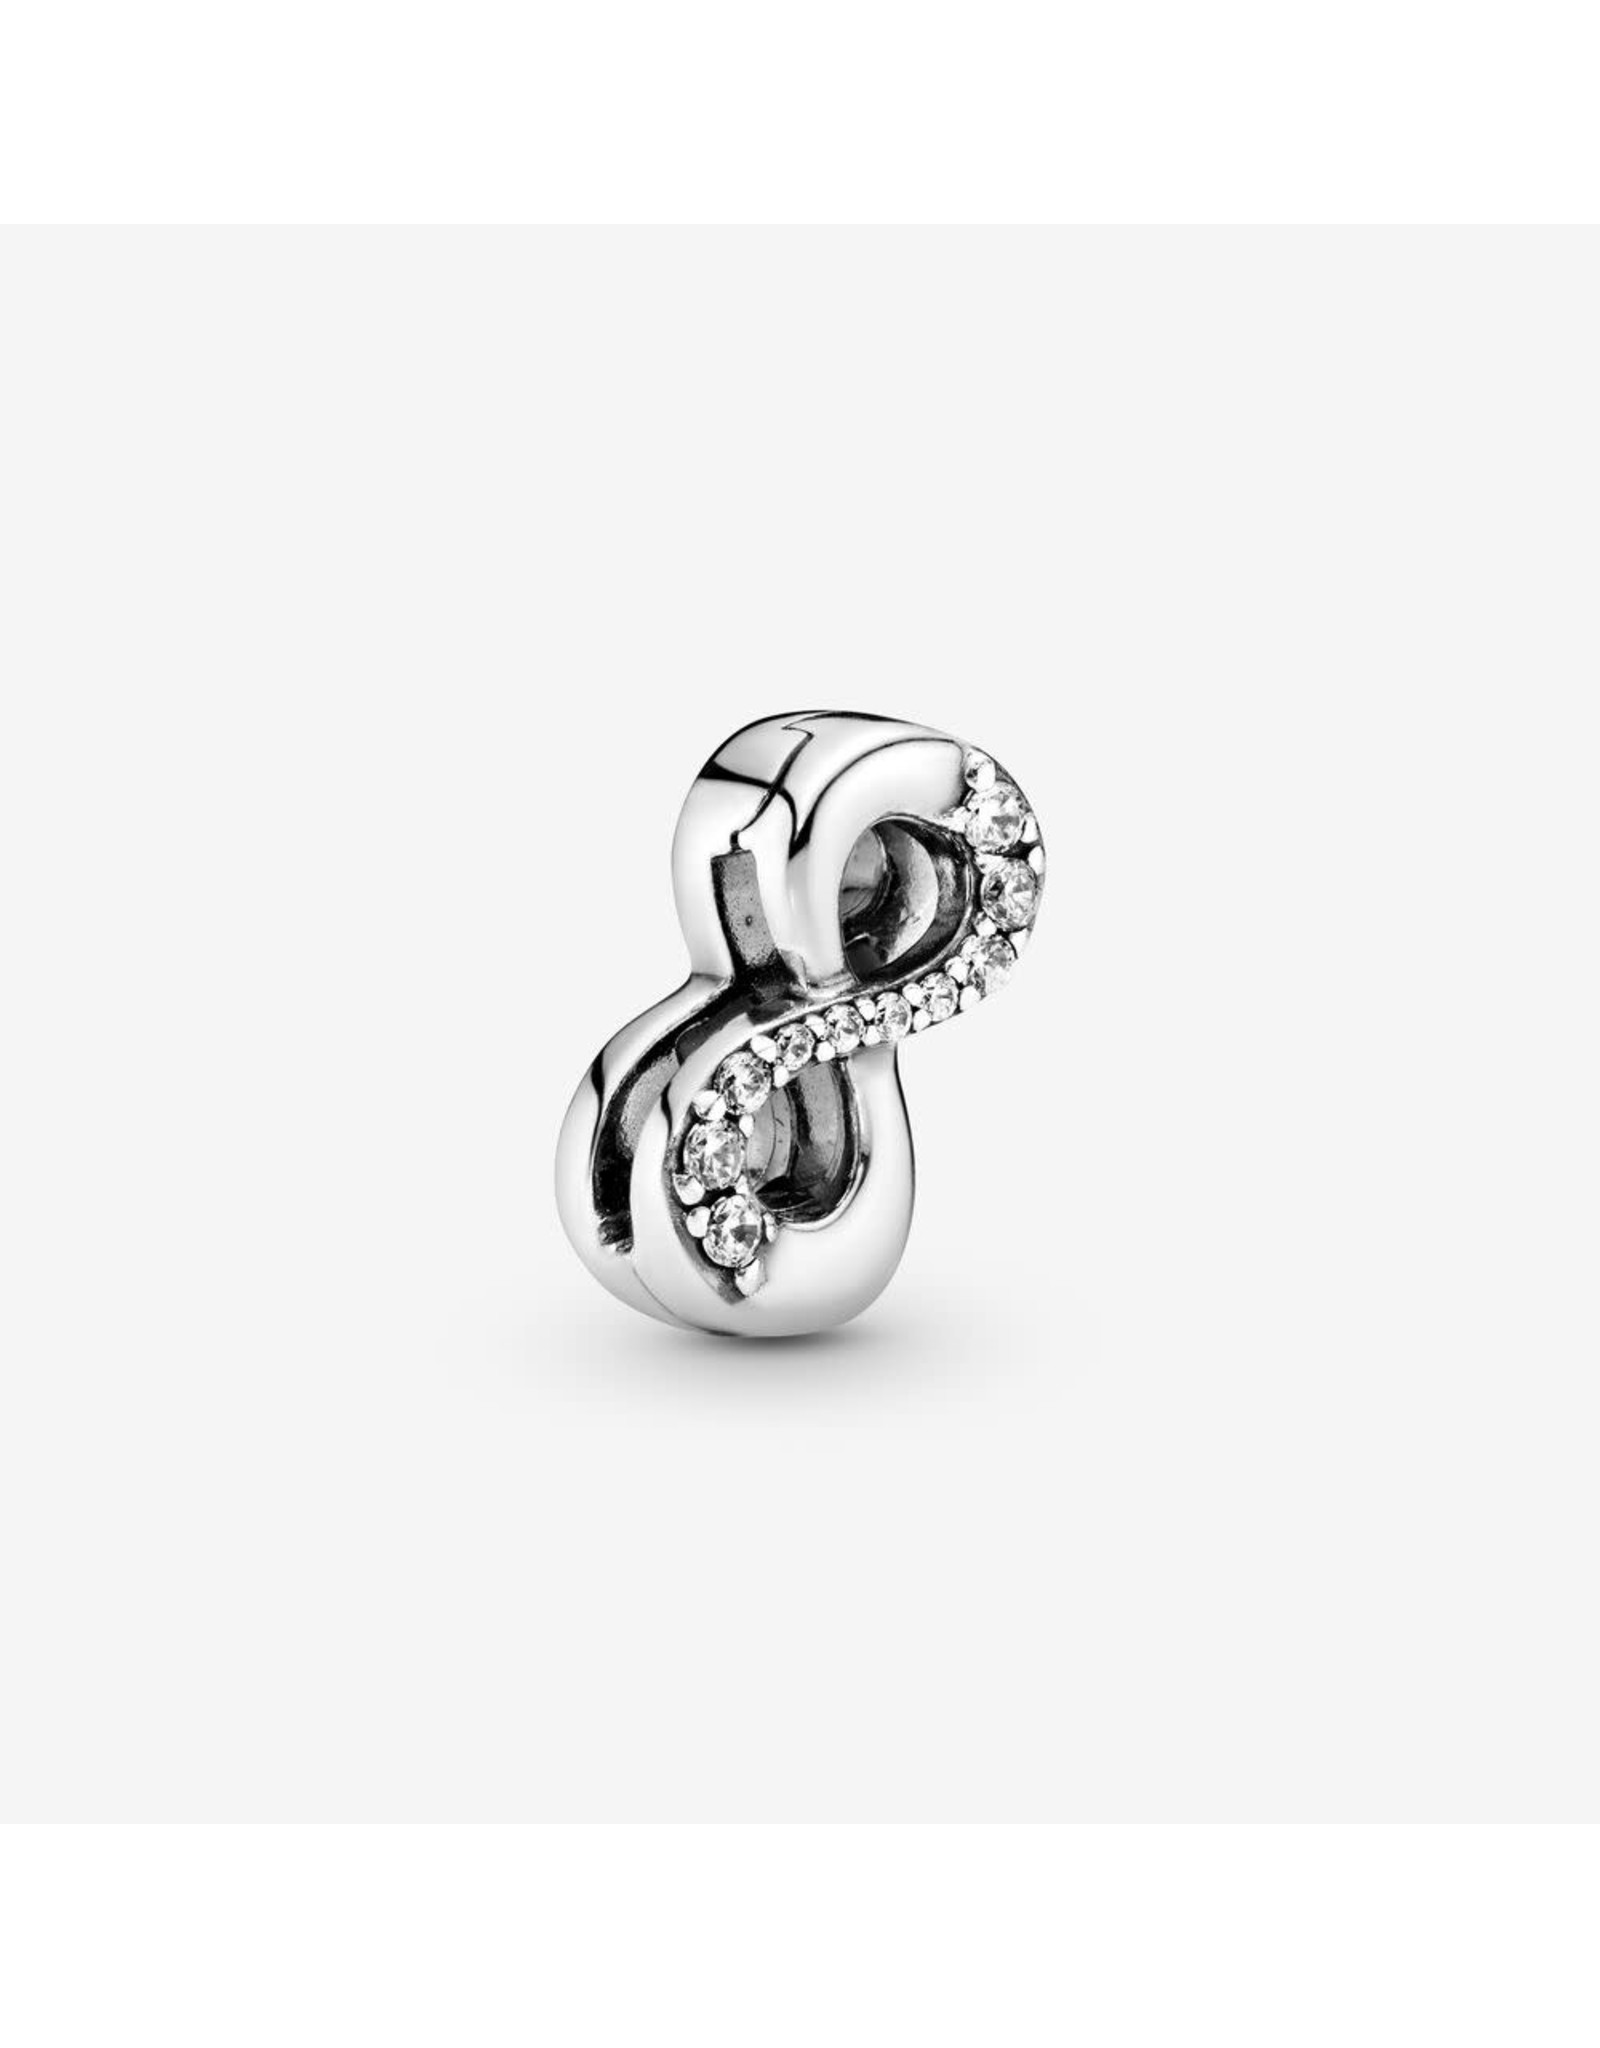 Pandora Pandora Reflexions Infinity Clip Charm In Sterling Silver With 10 Bead-Set Clear CZ